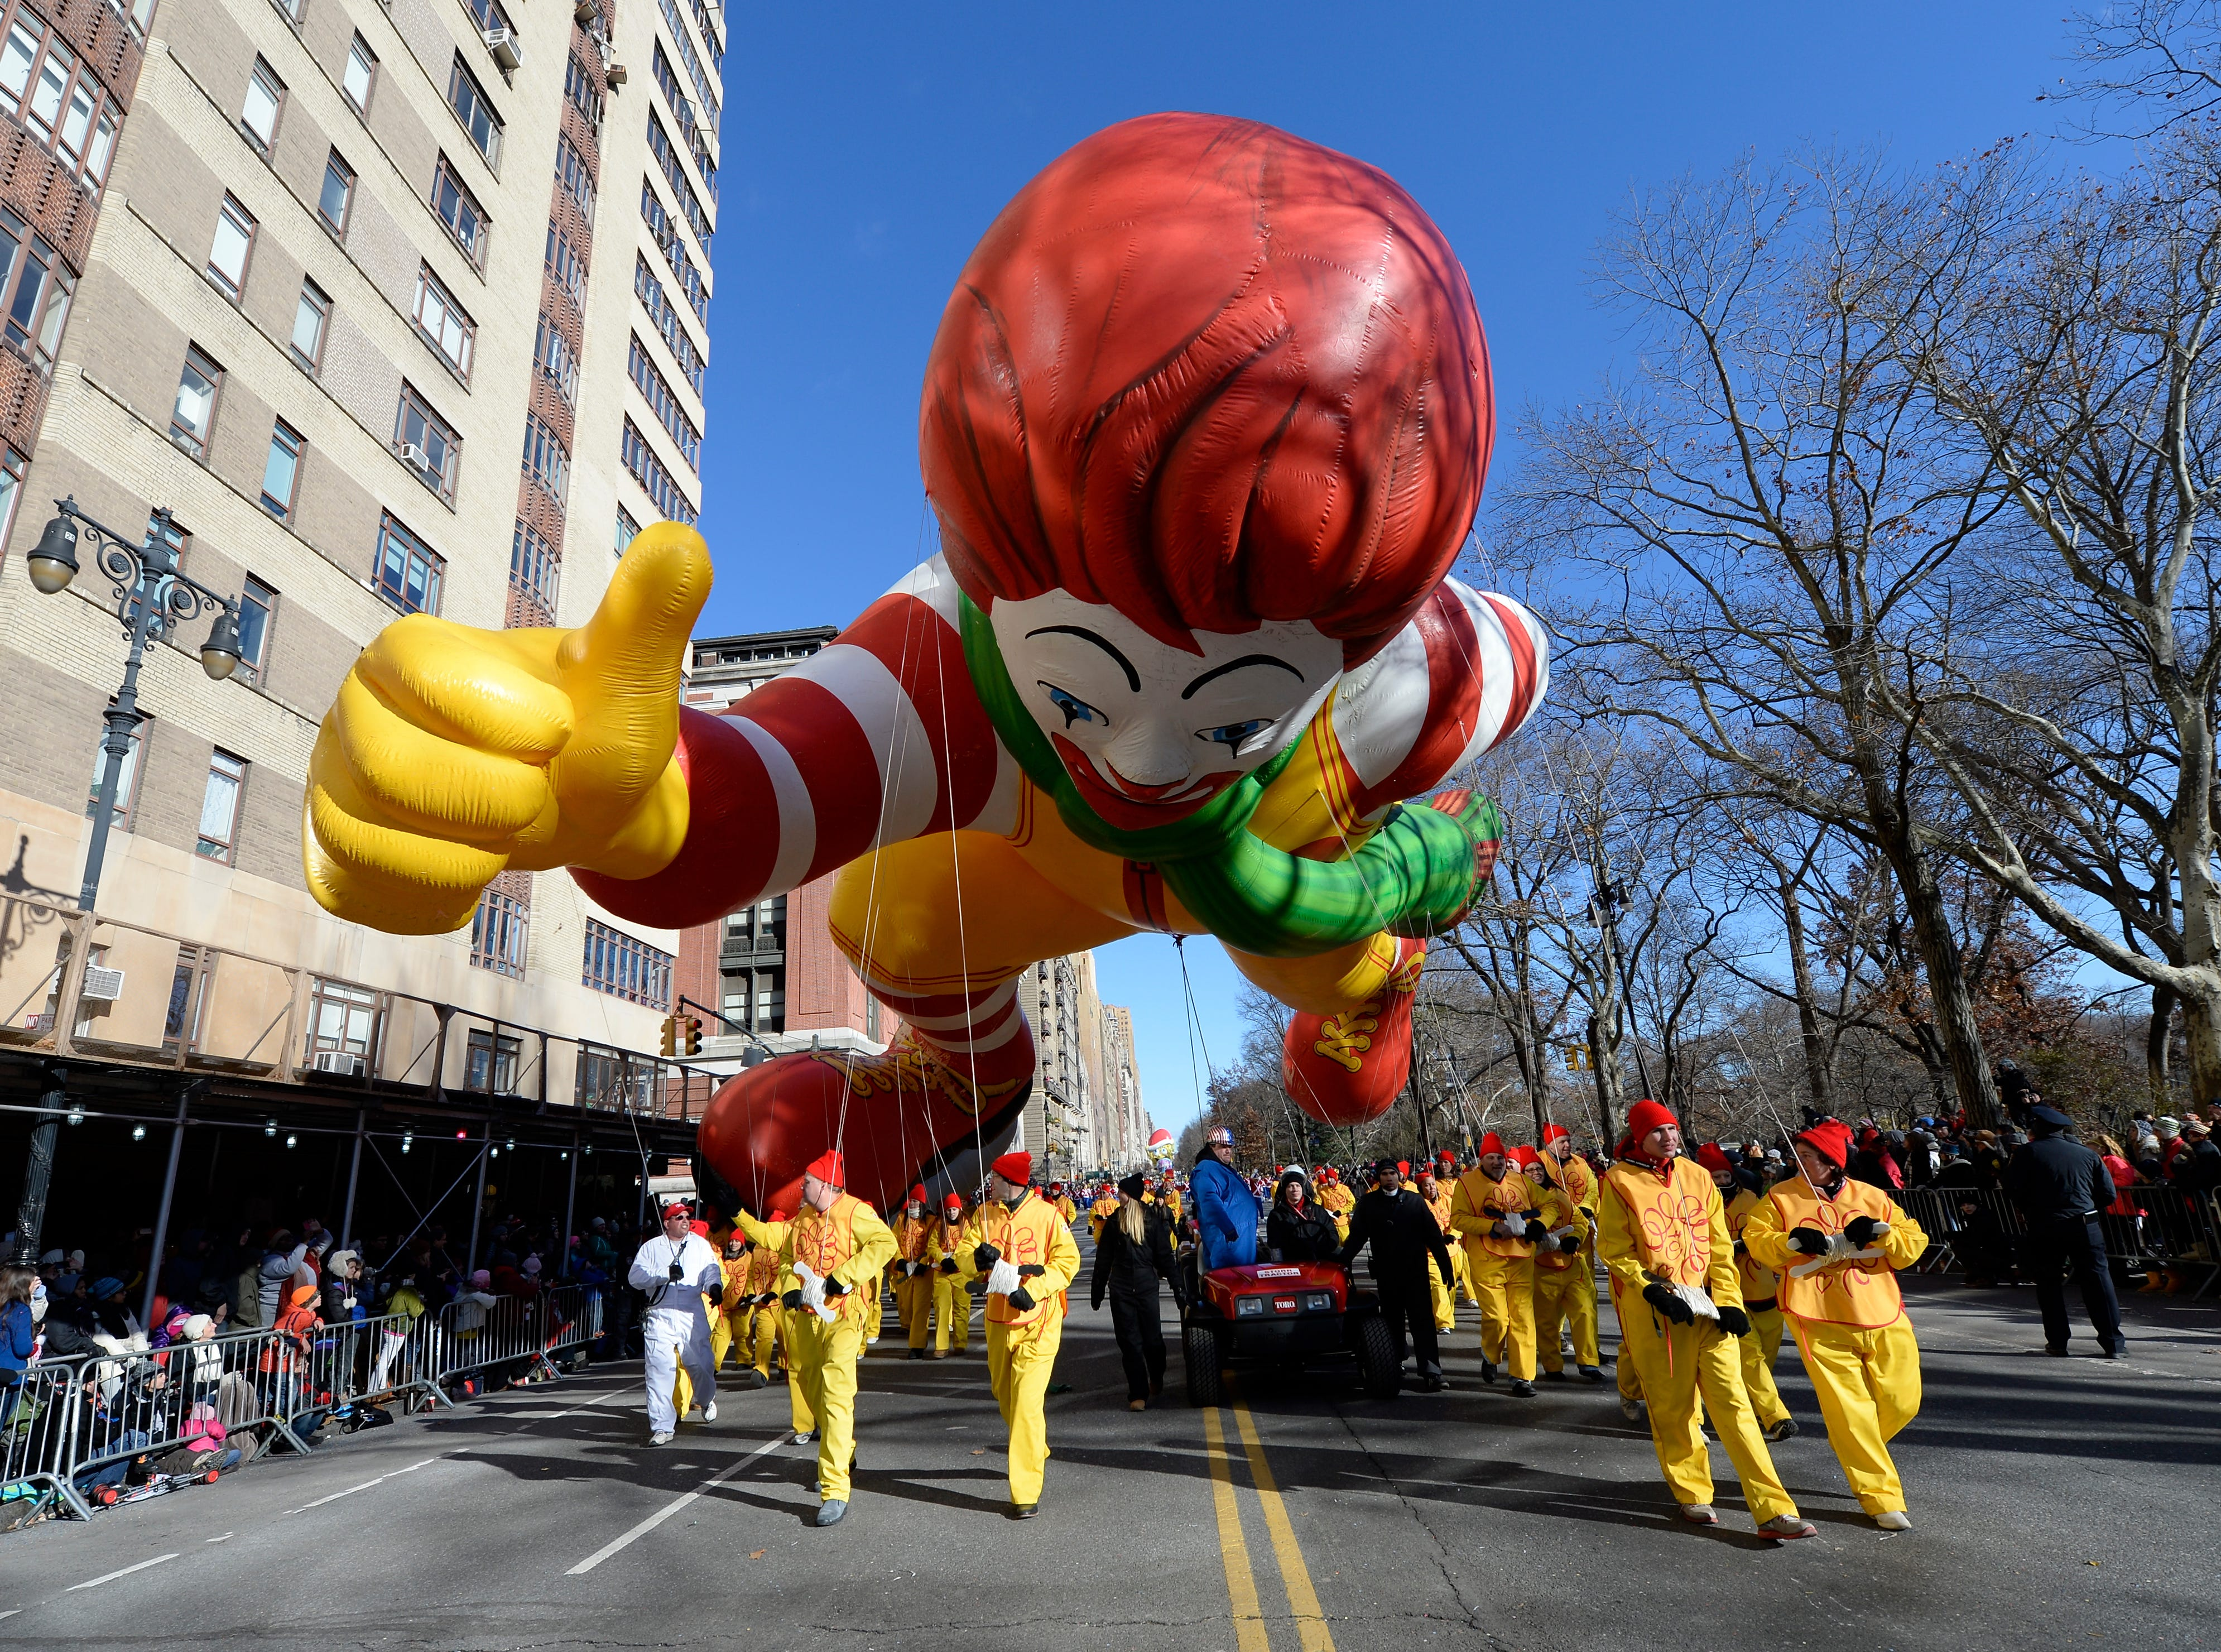 11/28/13 10:59:11 AM -- New York, NY, U.S.A  -- 87th Annual Macy's Thanksgiving Day Parade -- Ronald McDonald Photo by Robert Deutsch, USA TODAY Staff